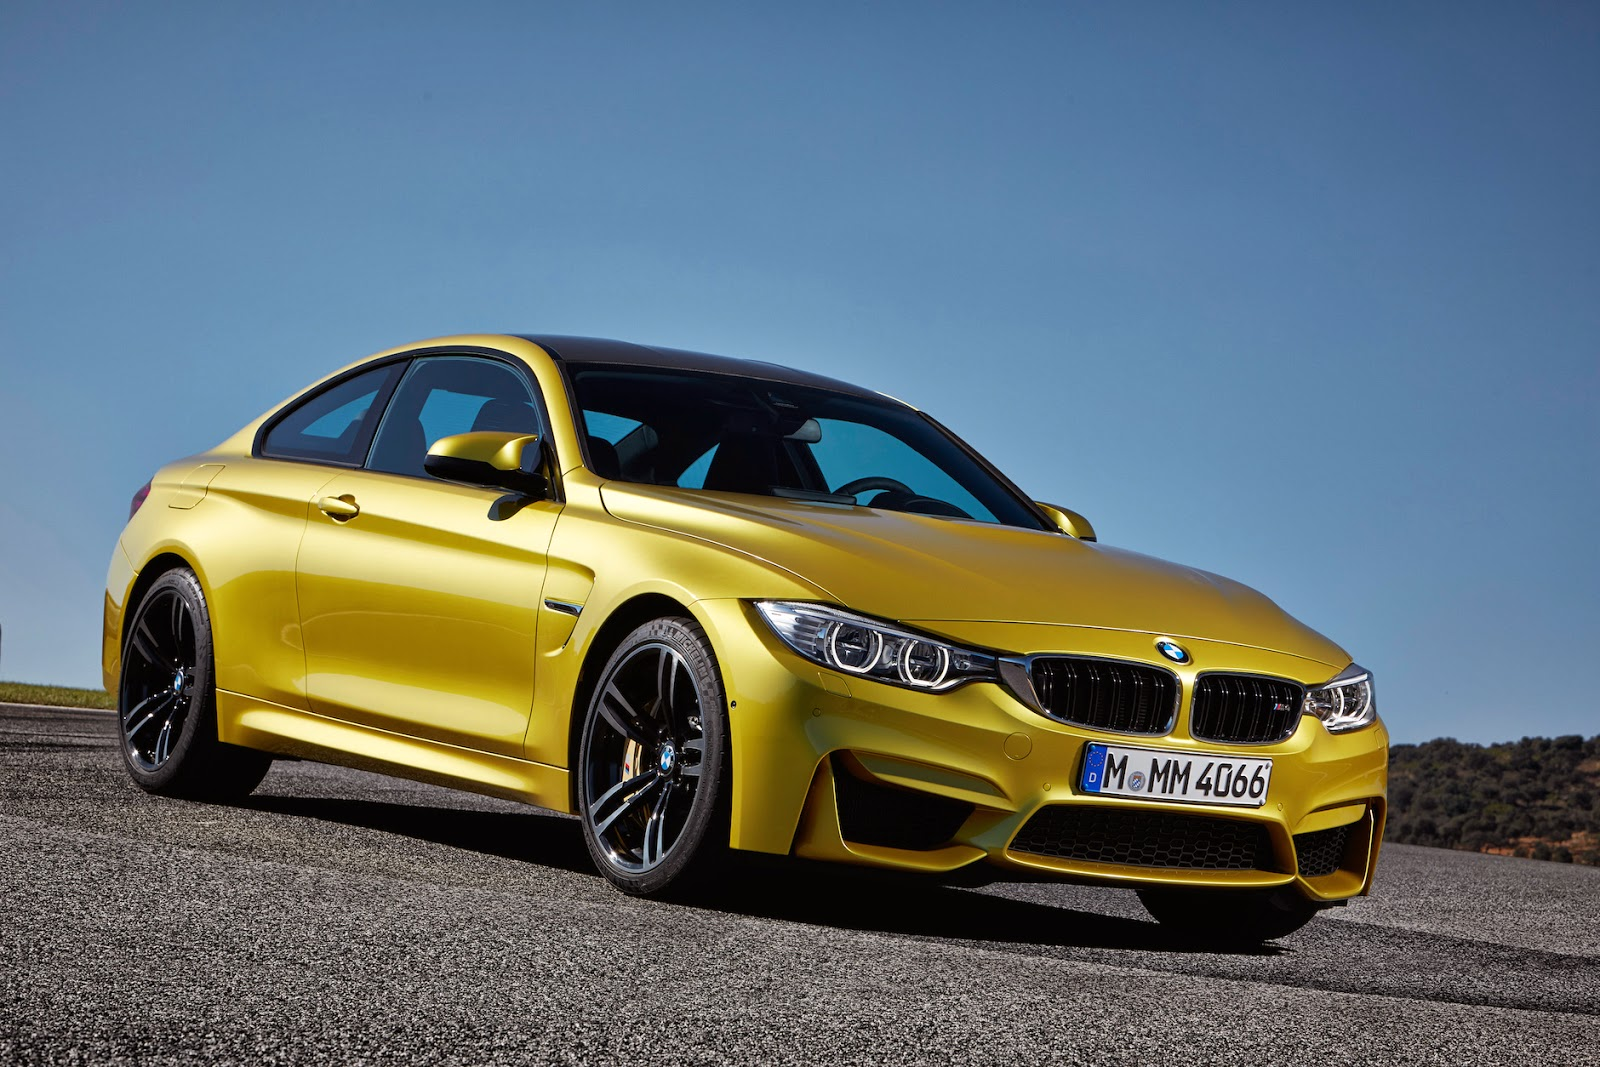 BMW M4 - 2 door coupe